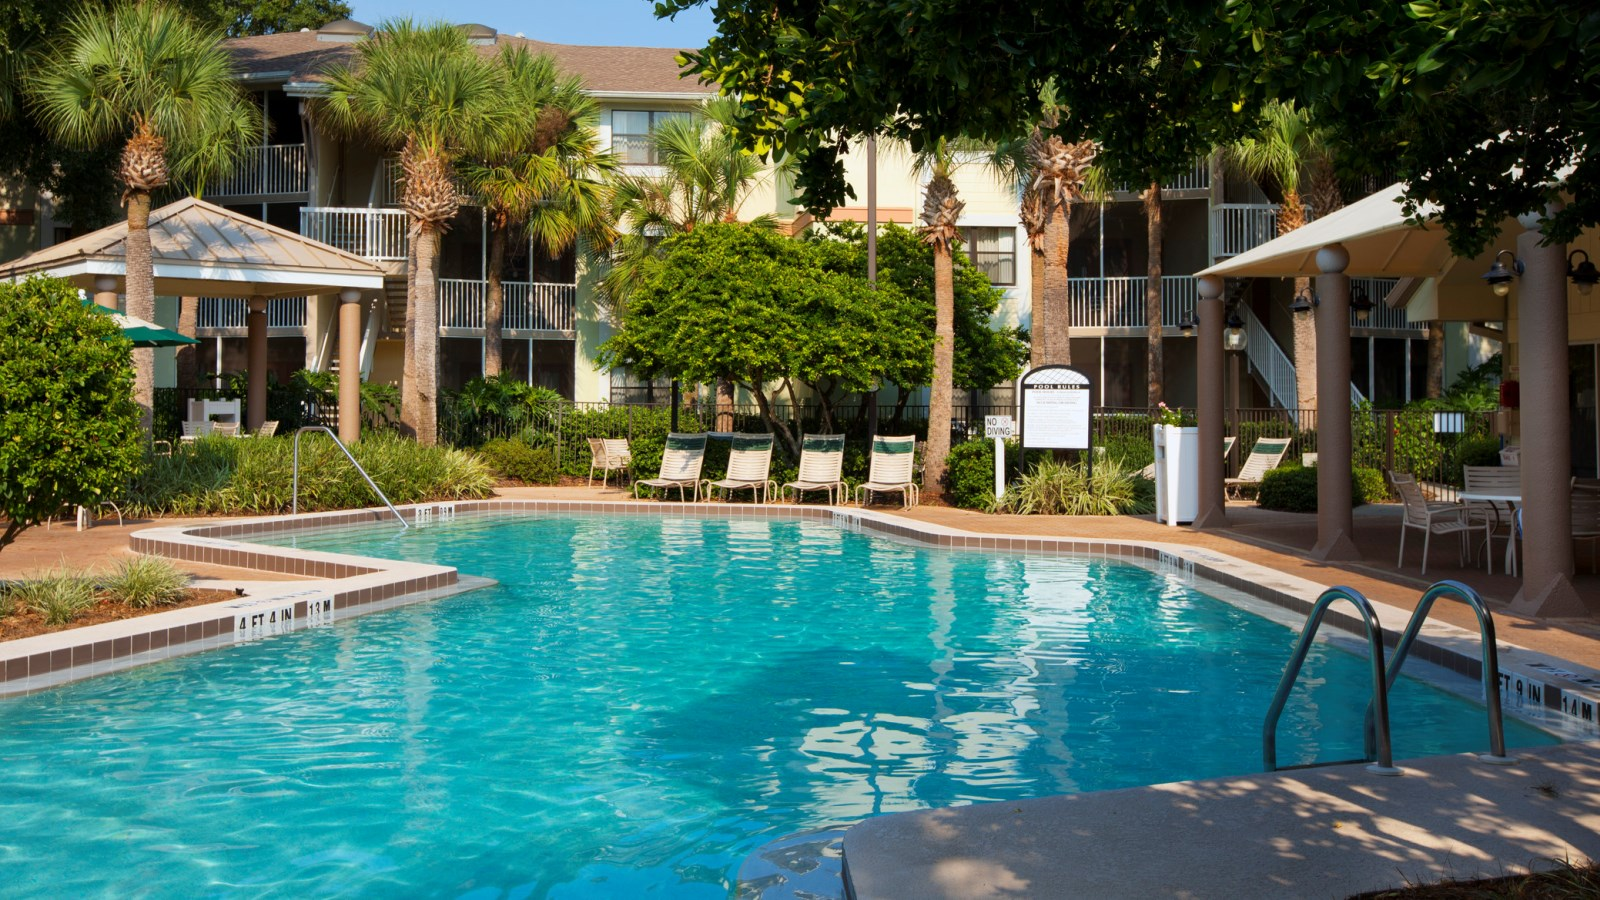 Super Pool Sheraton Vistana Resort Villas, Lake Buena Vista/Orlando